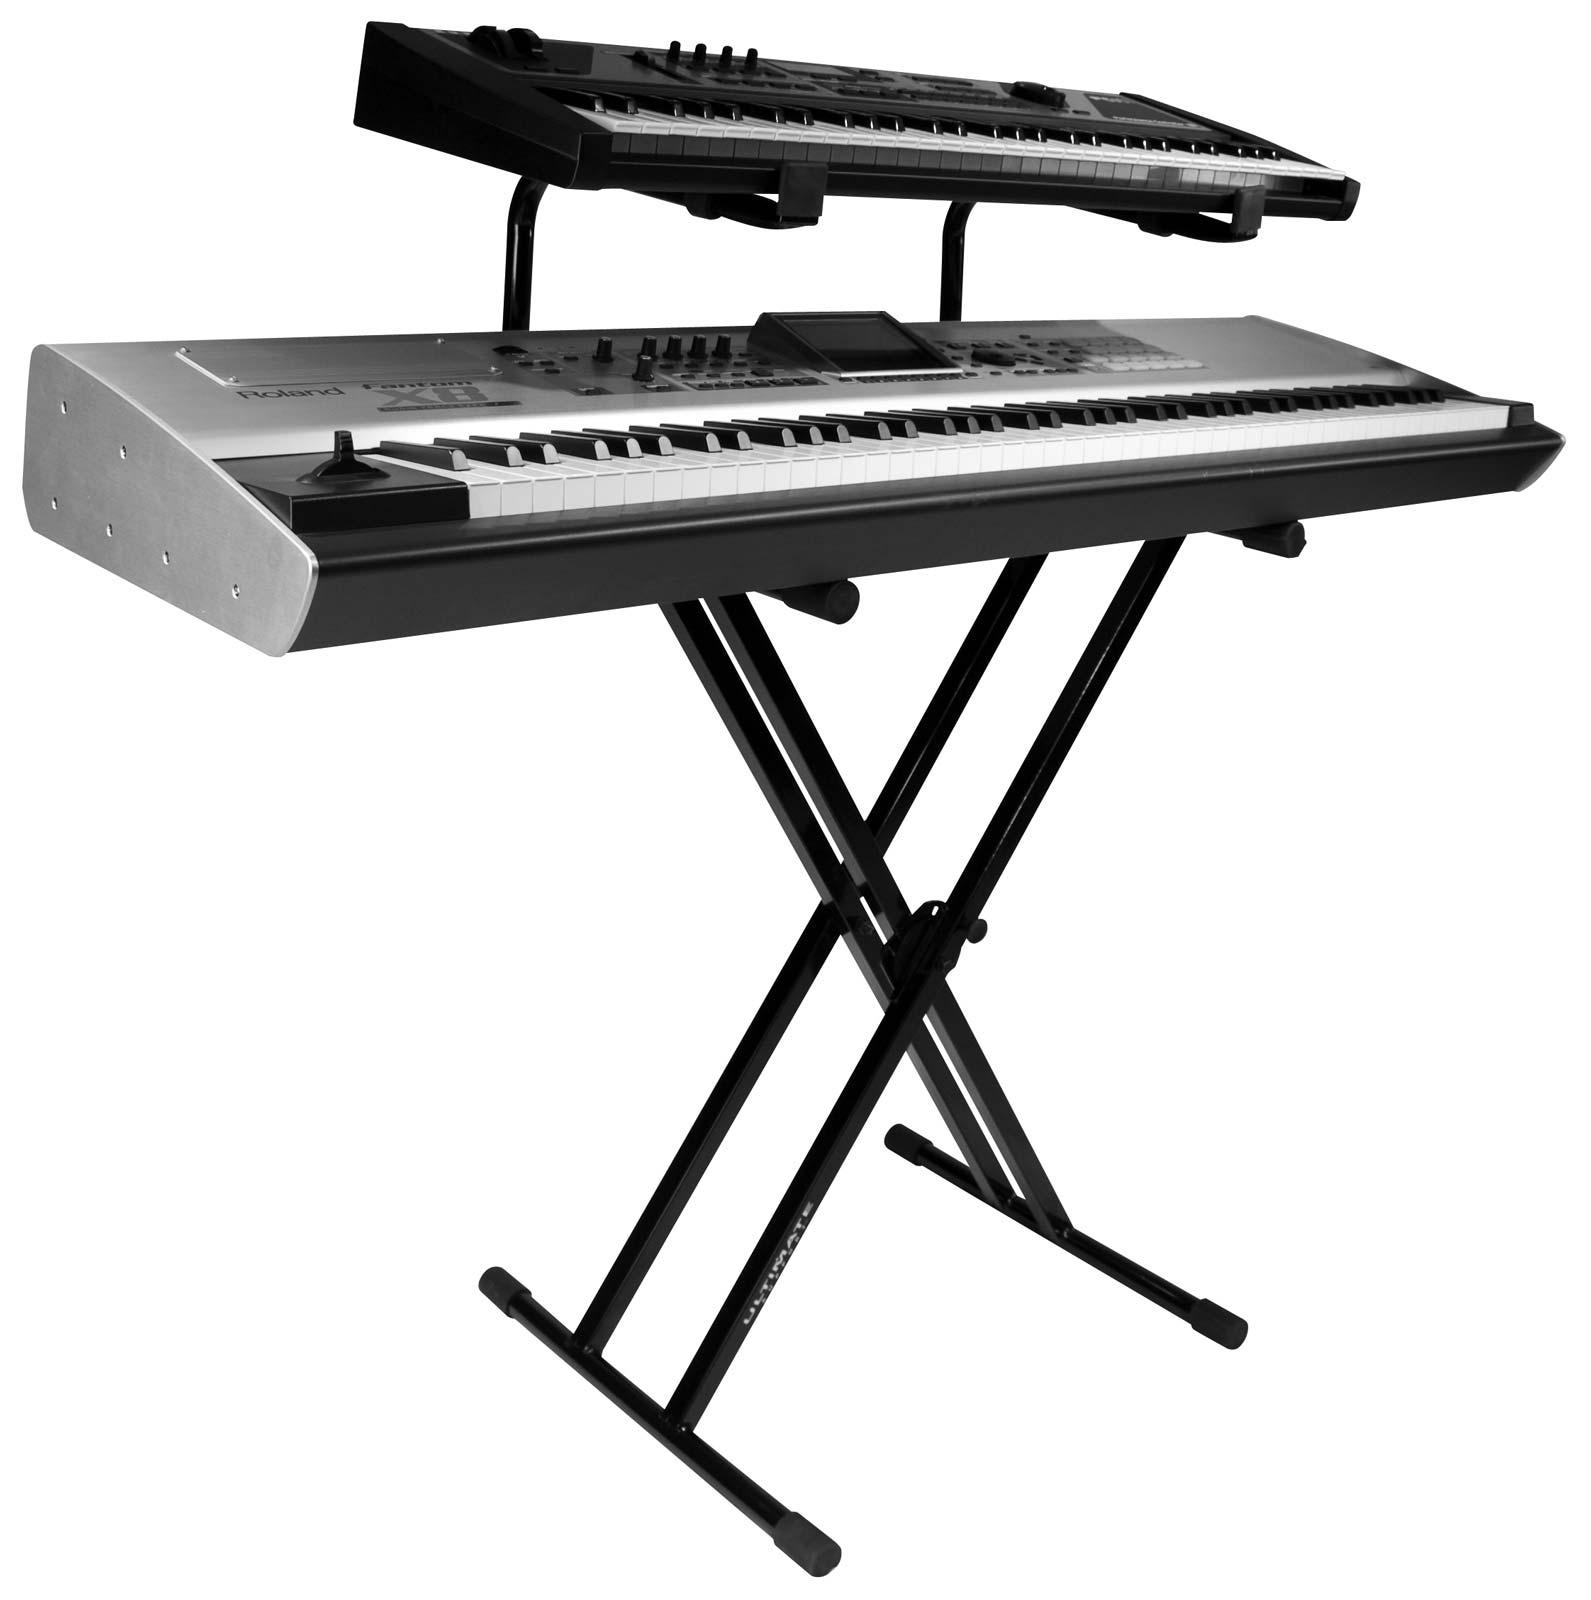 pro rack stand spider konig km the meyer tray store controller dj for keyboard stands accessories